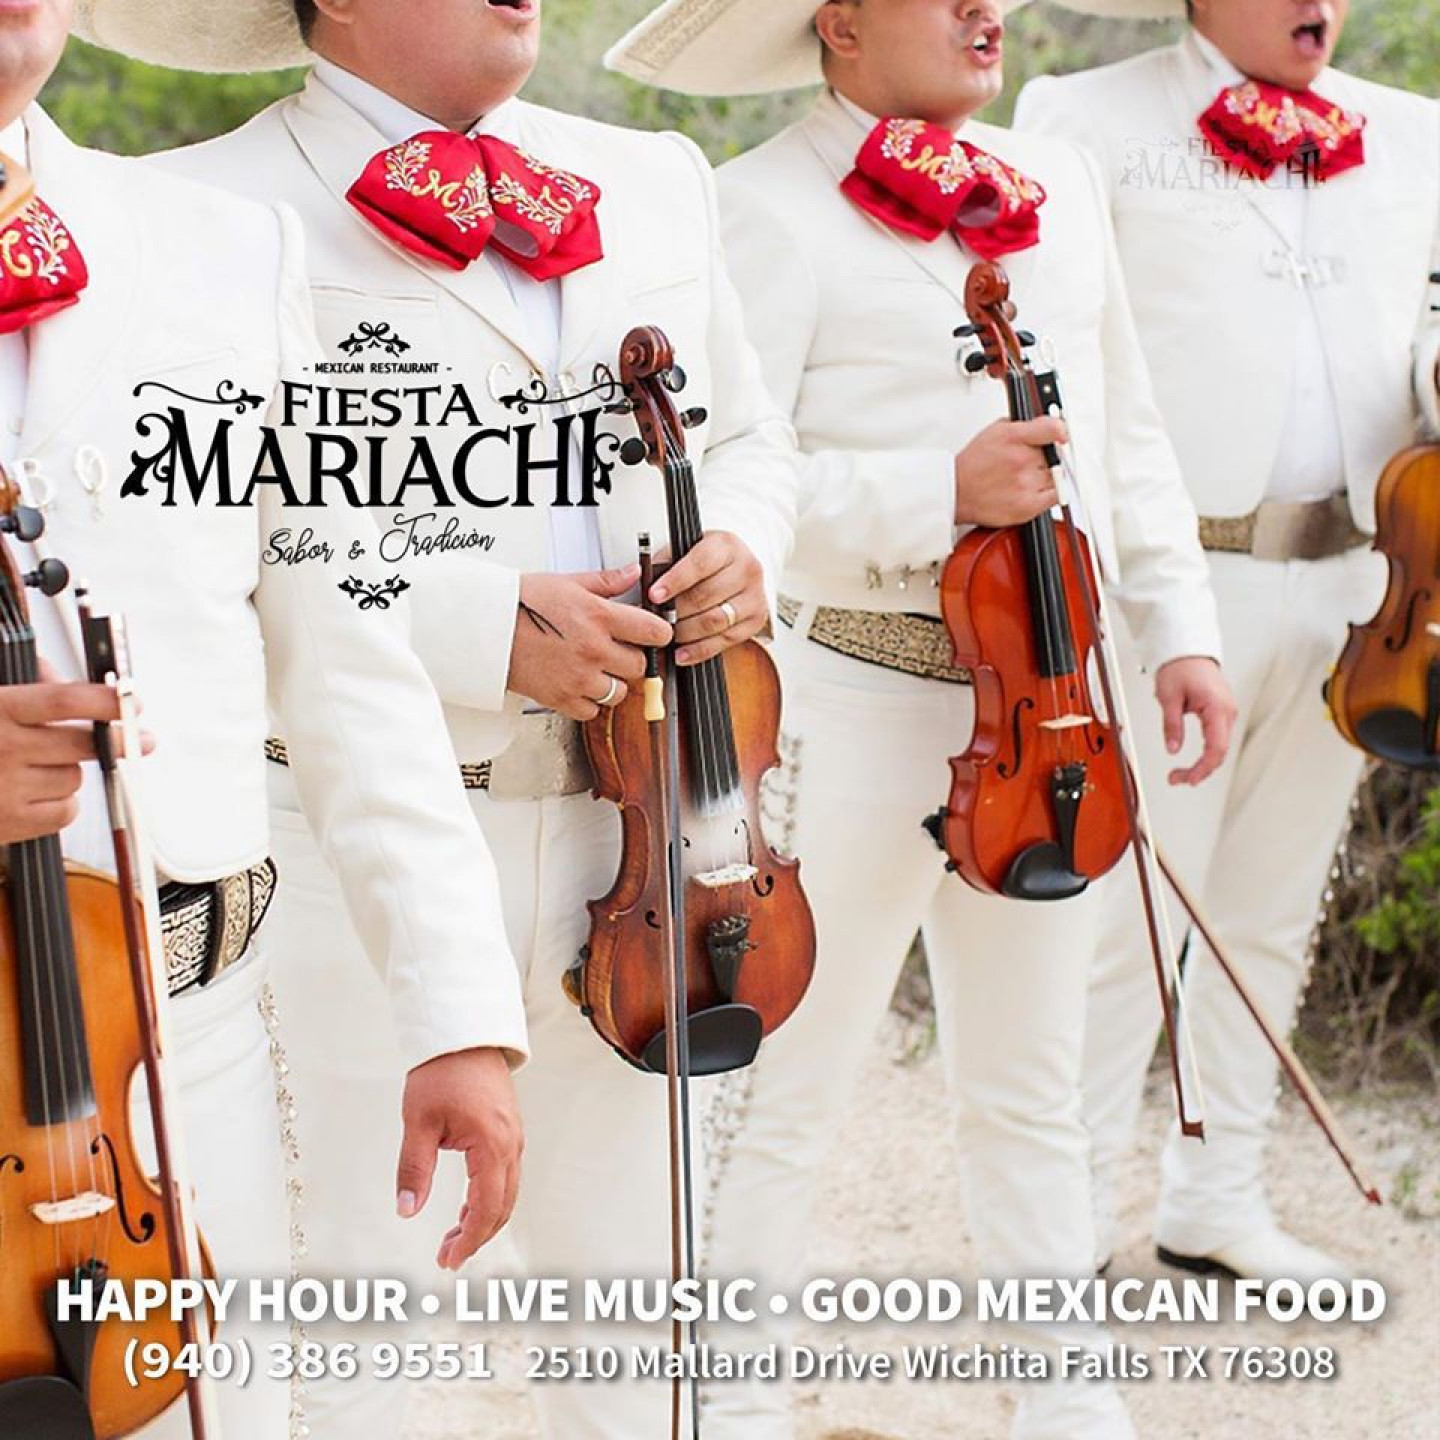 Mariachi Band Every Wednesday from 6-9PM!